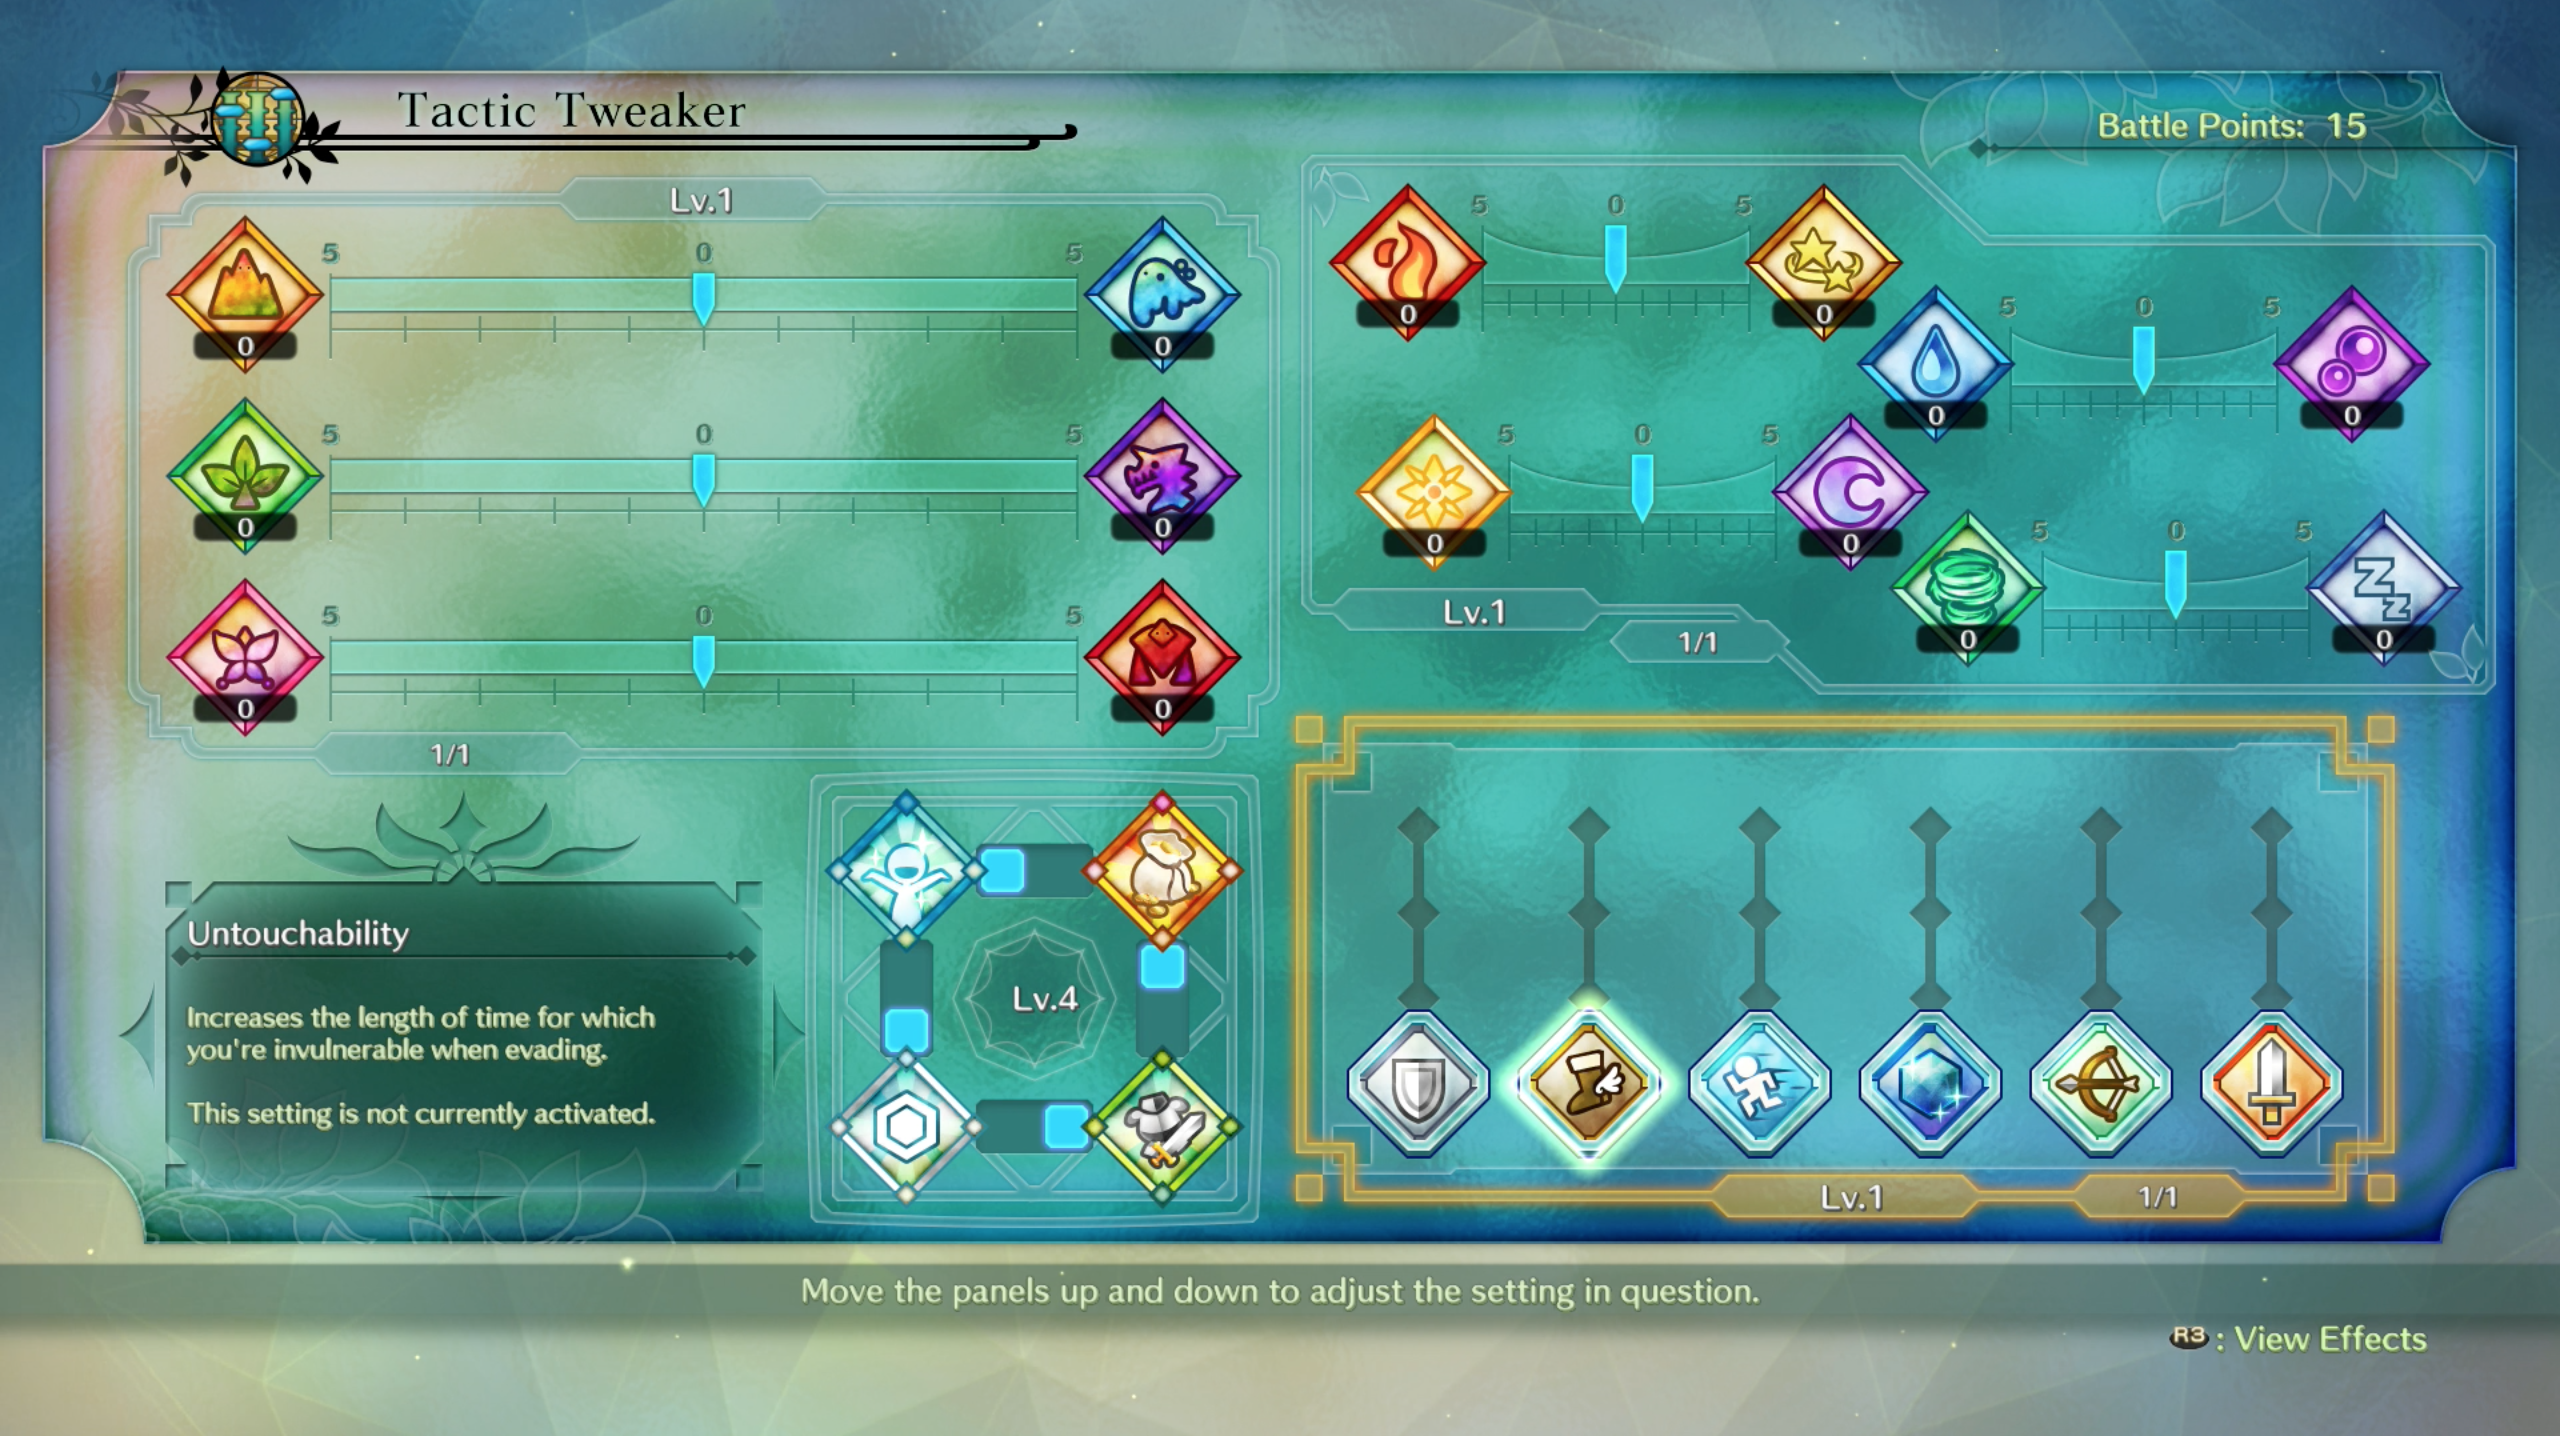 Ni no Kuni II Tactic Tweaker Guide: how to best use the tactics